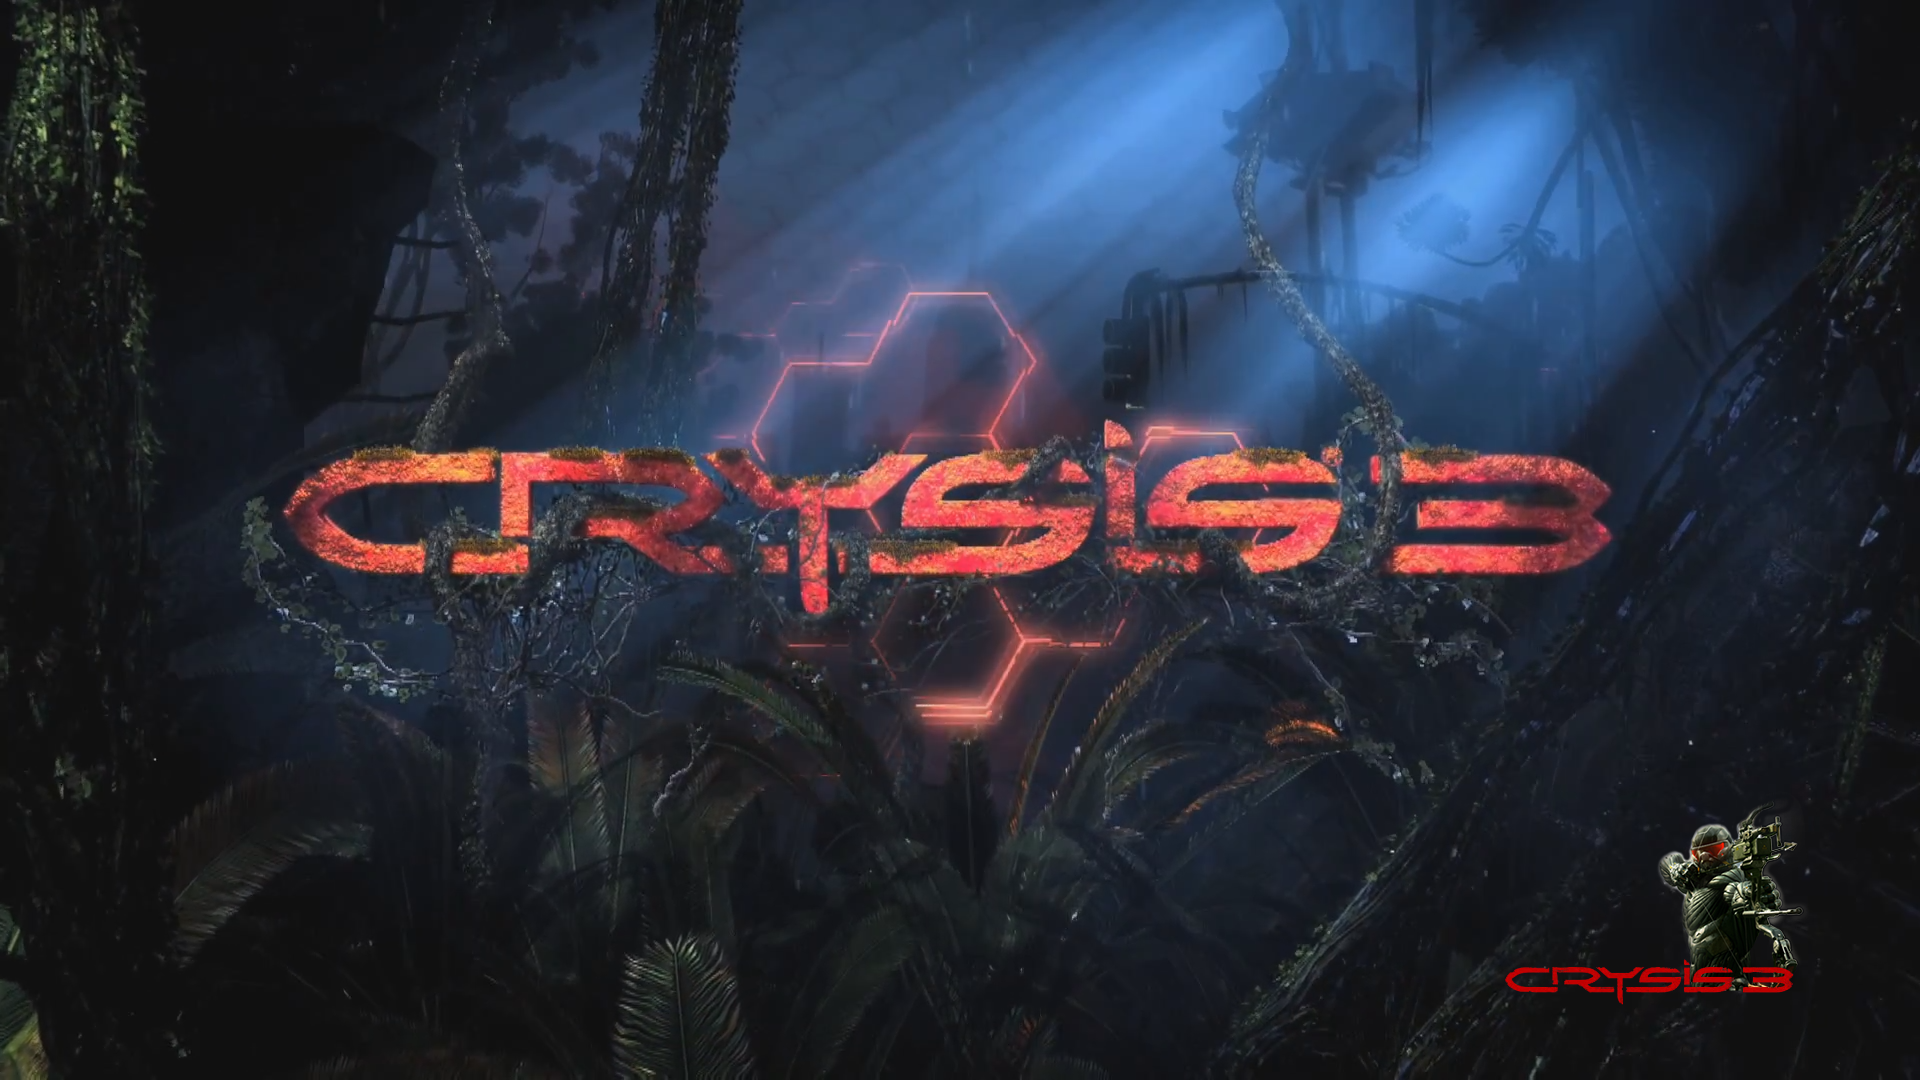 Wide HD Crysis 3 Wallpaper | B.SCB 4K Ultra HD